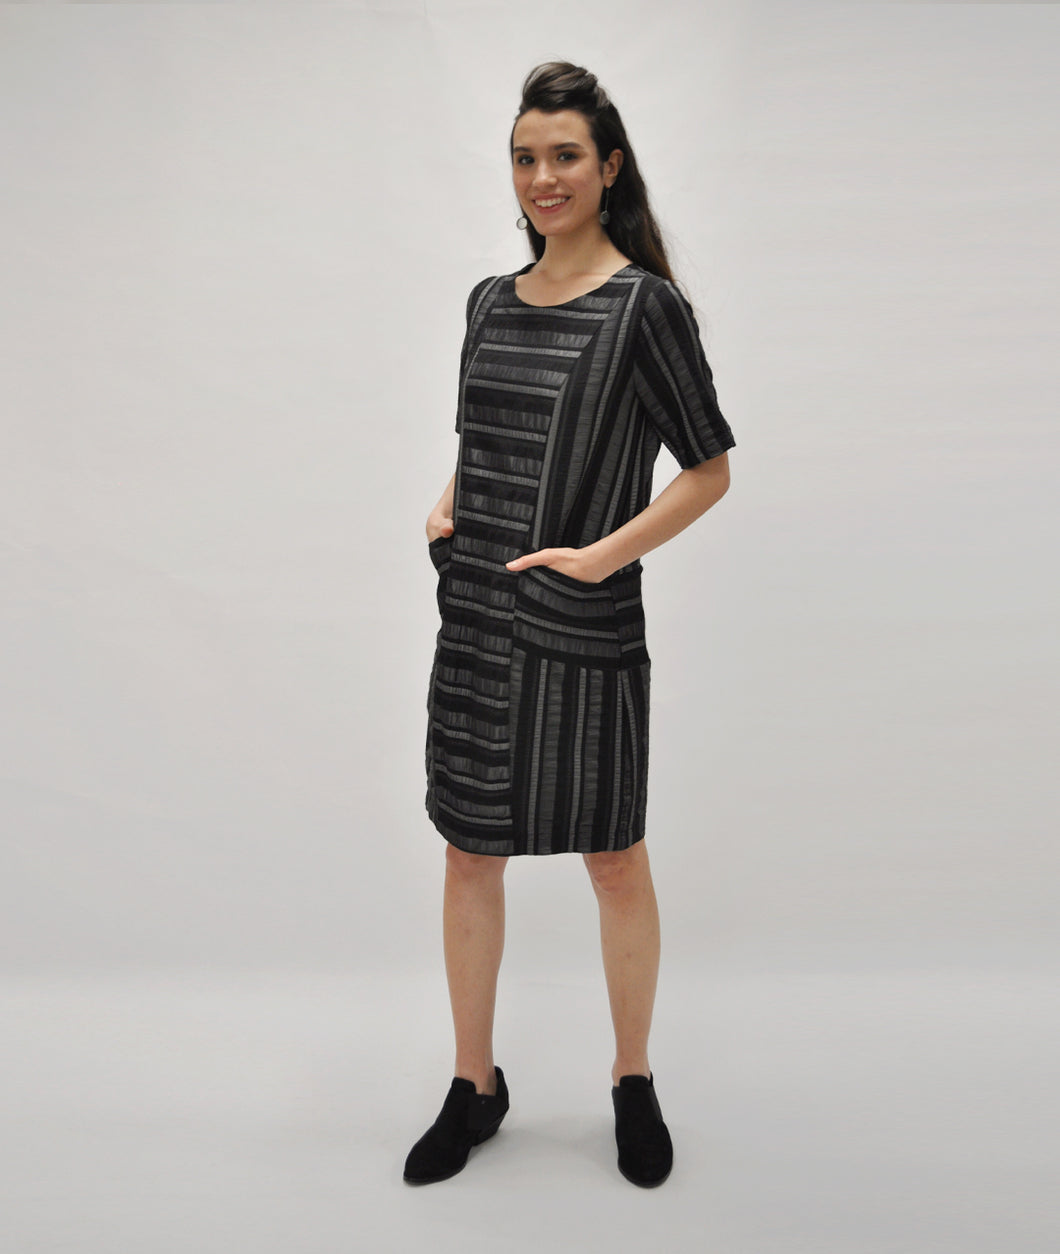 model in a silver and black striped shift dress with princess seams and squared pockets at the hips